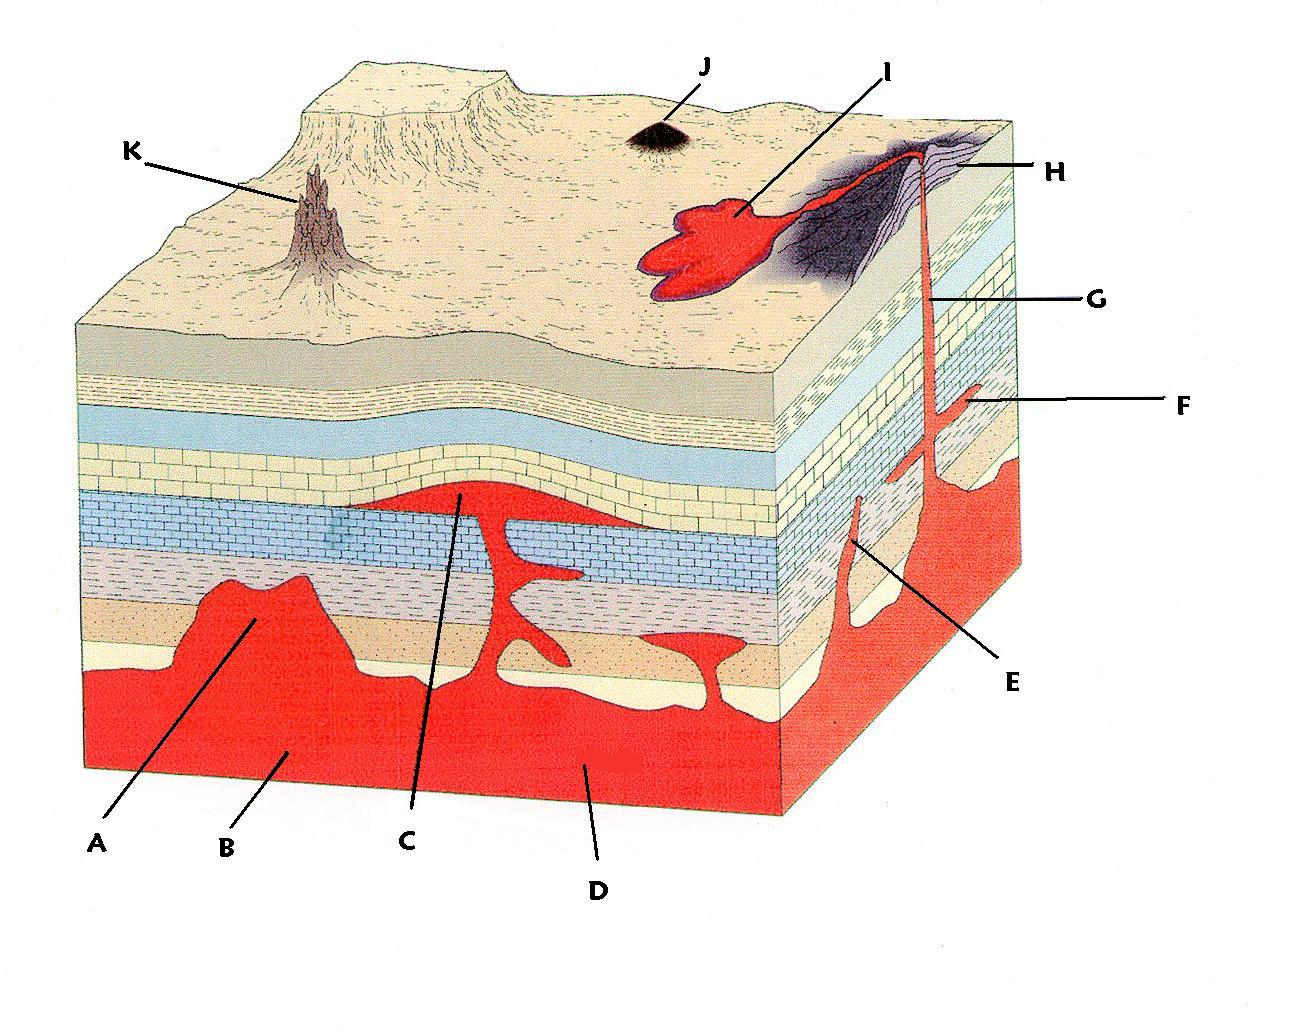 hight resolution of igneous rocks rock formation diagram igneous structures diagram